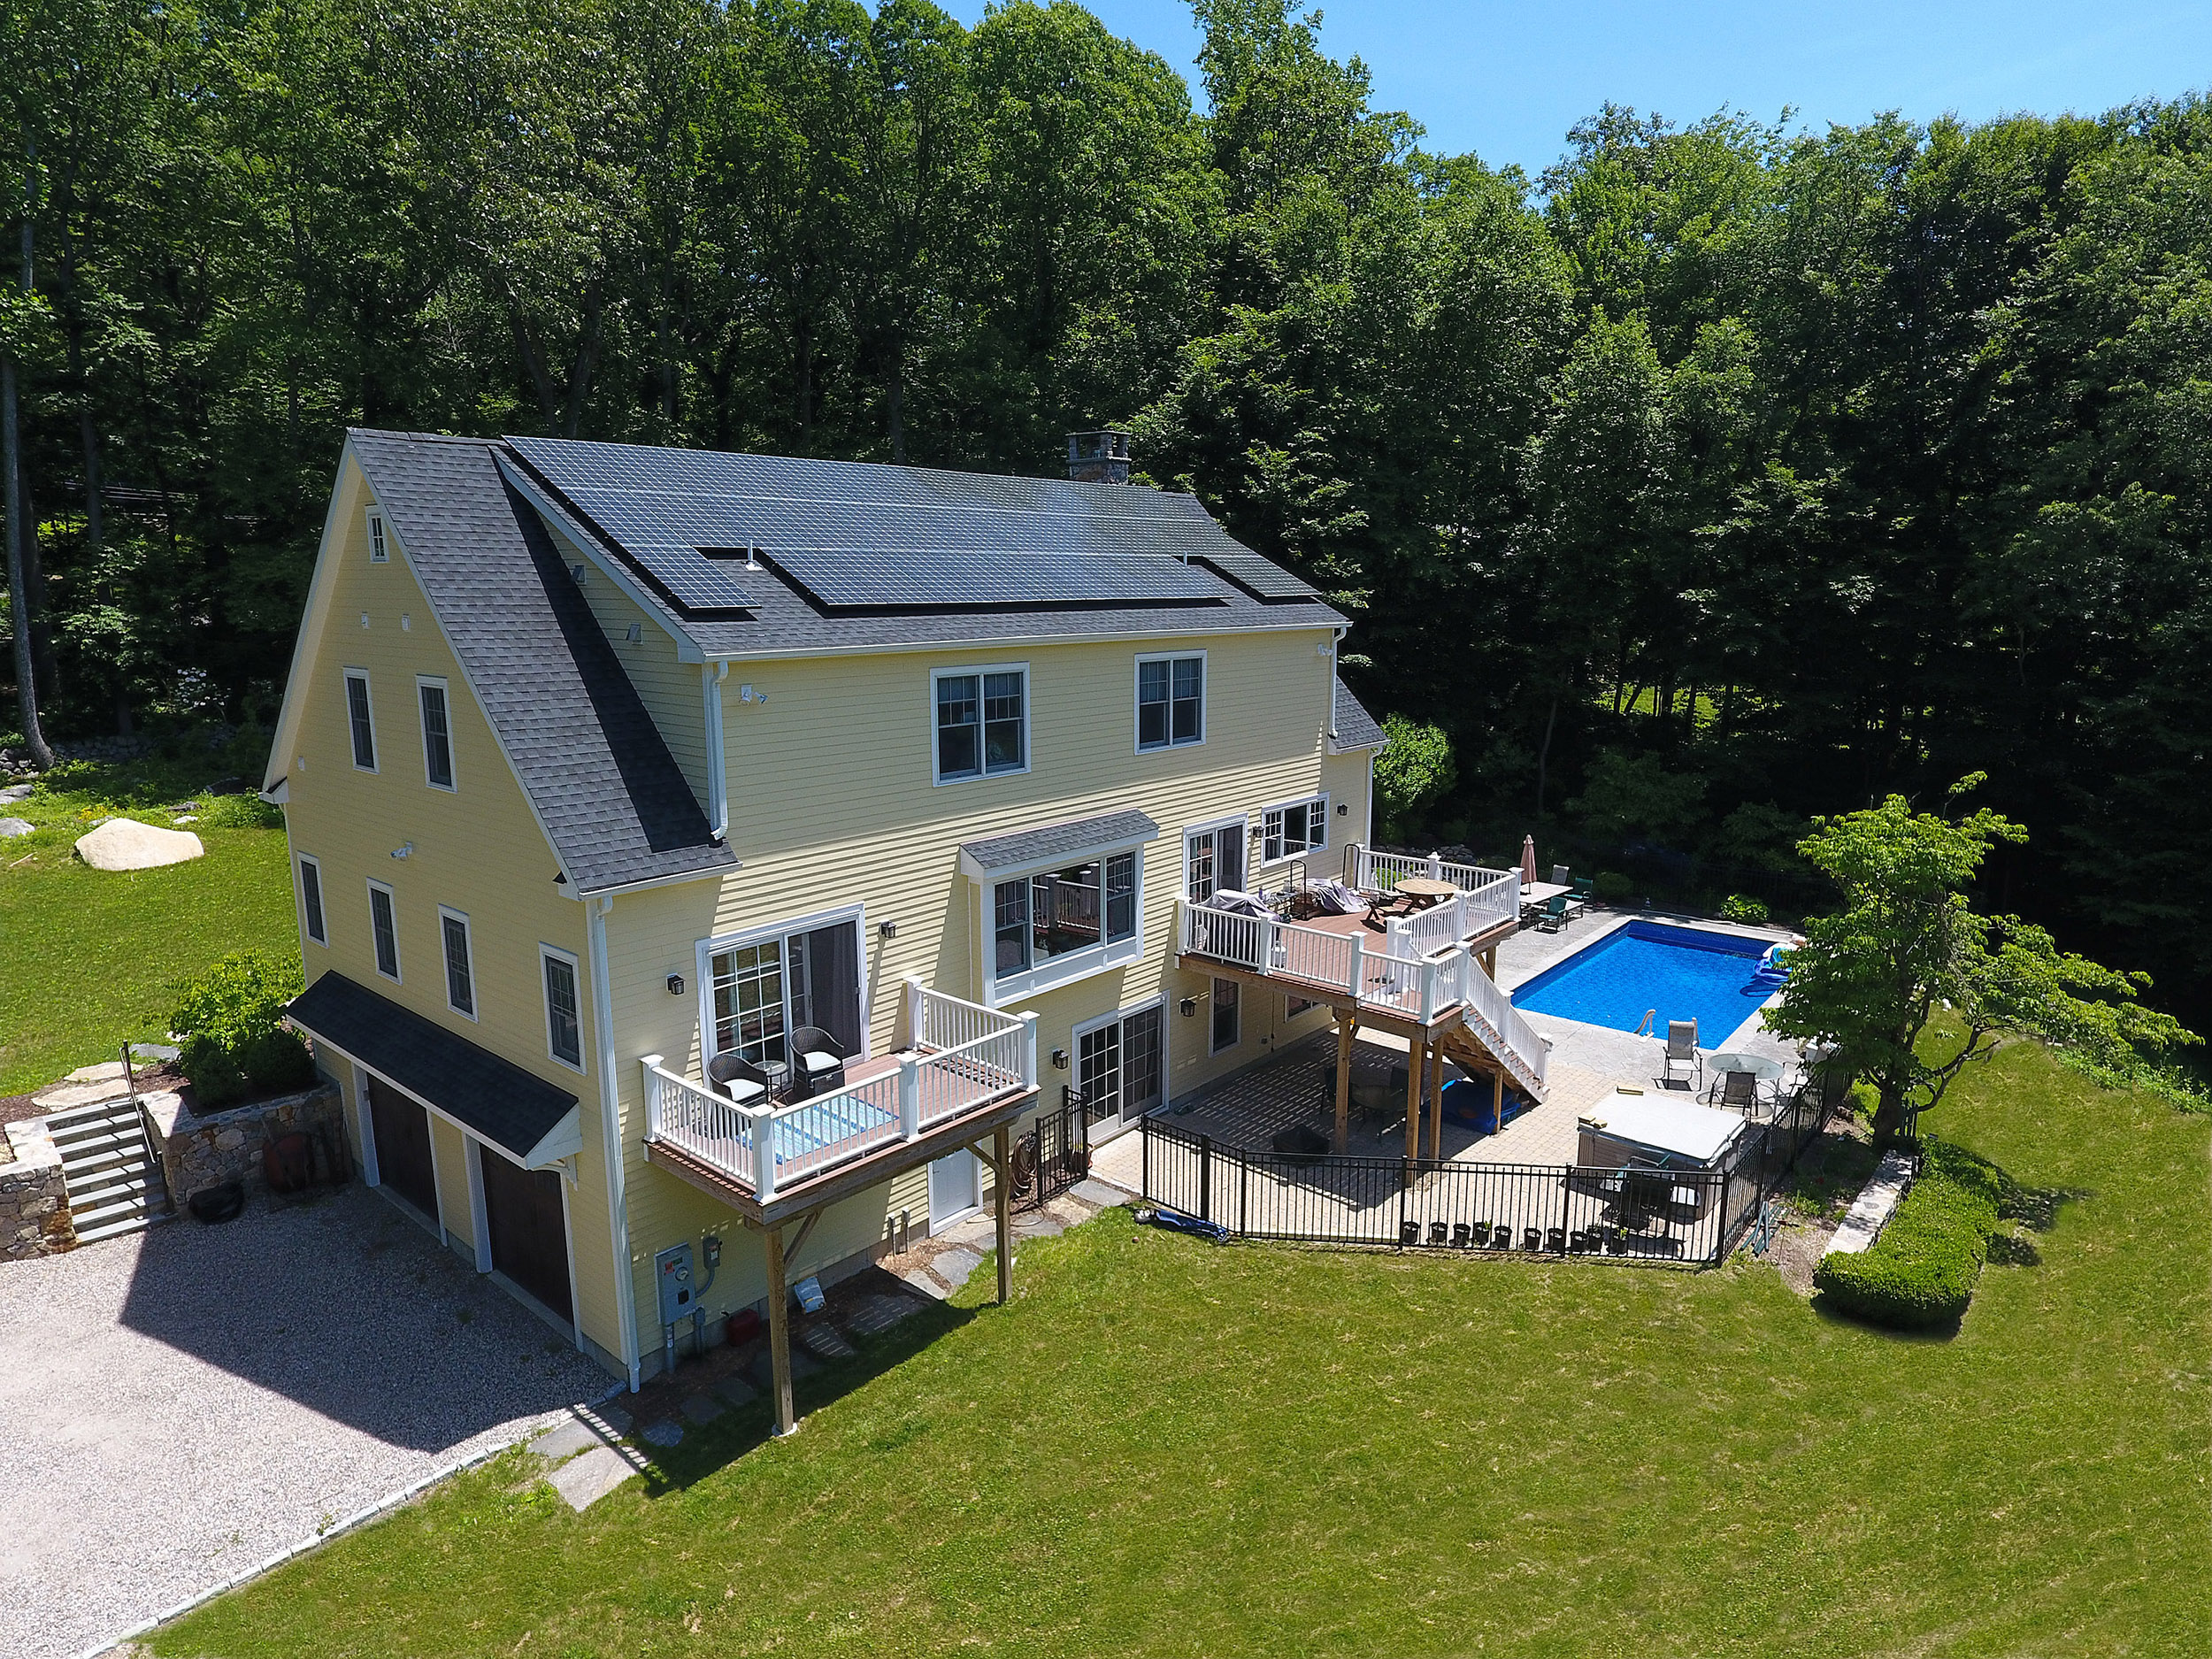 211_Linden_Tree_Rd_Wilton_Aerial_16 - updated grass - GI WEBSITE.jpg